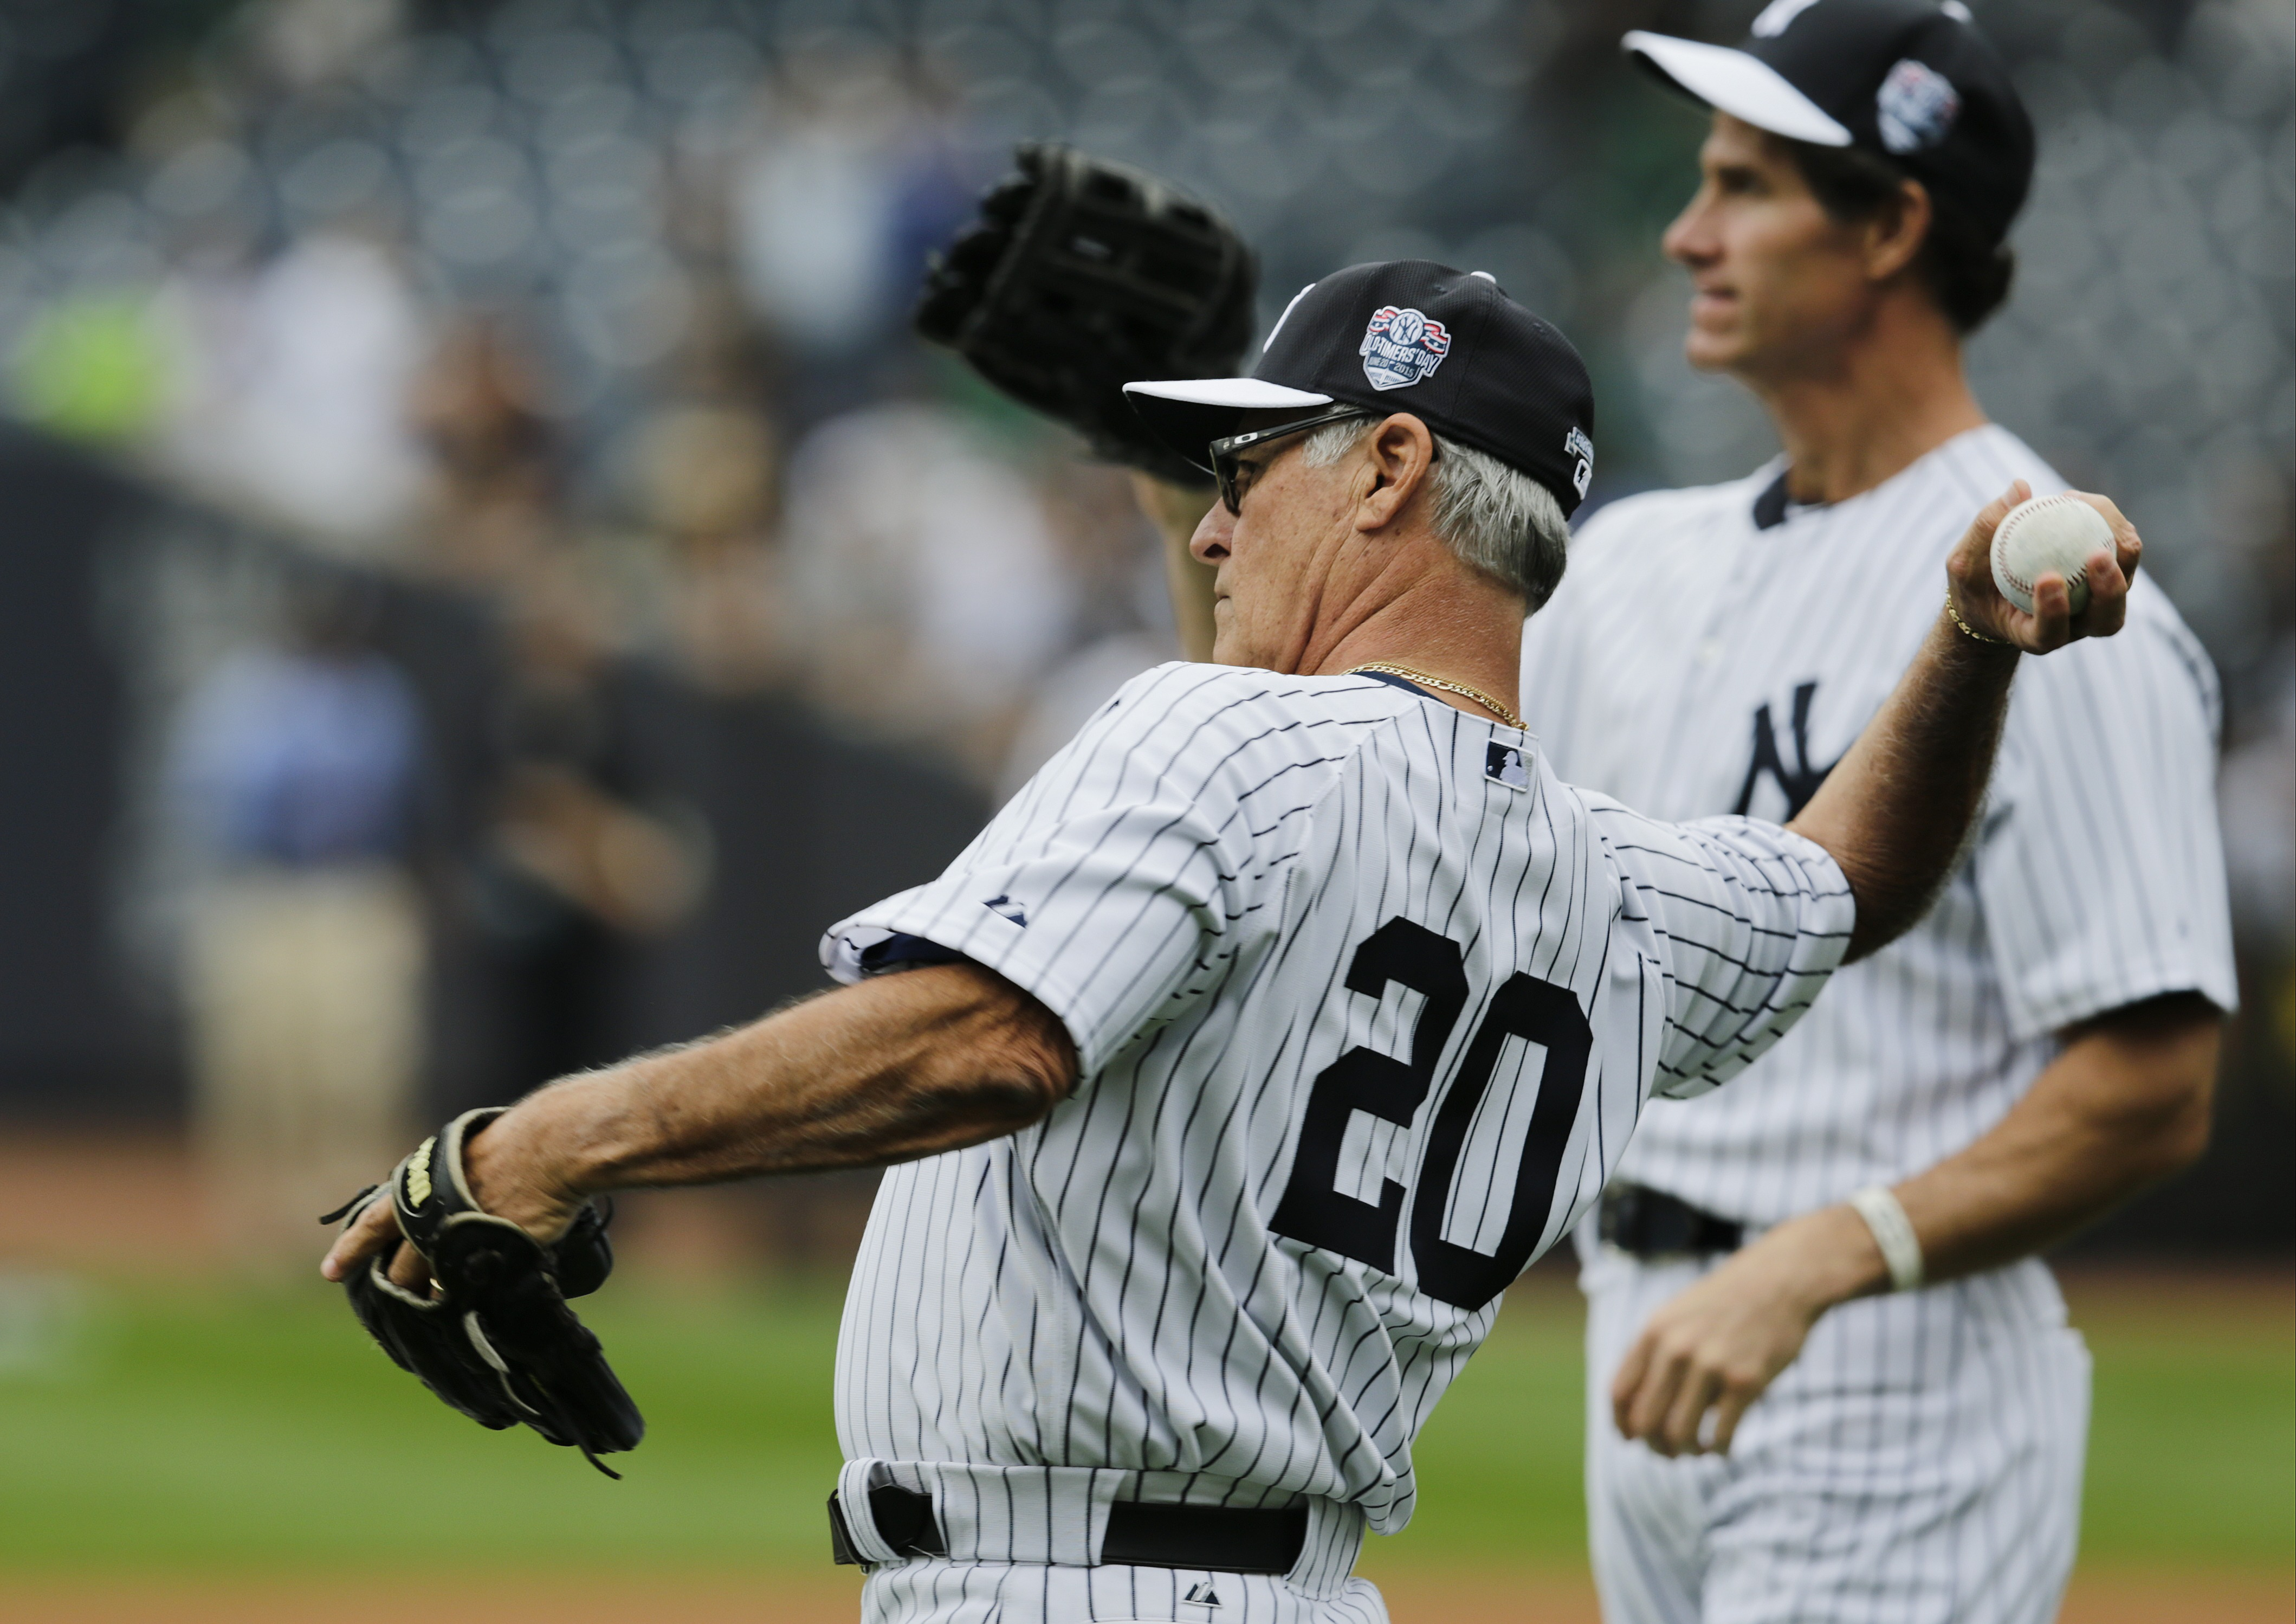 Former New York Yankees player Bucky Dent (20) throws a ball while warming up before the Old-Timers' Day baseball game Saturday, June 20, 2015, in New York. (AP Photo/Frank Franklin II)